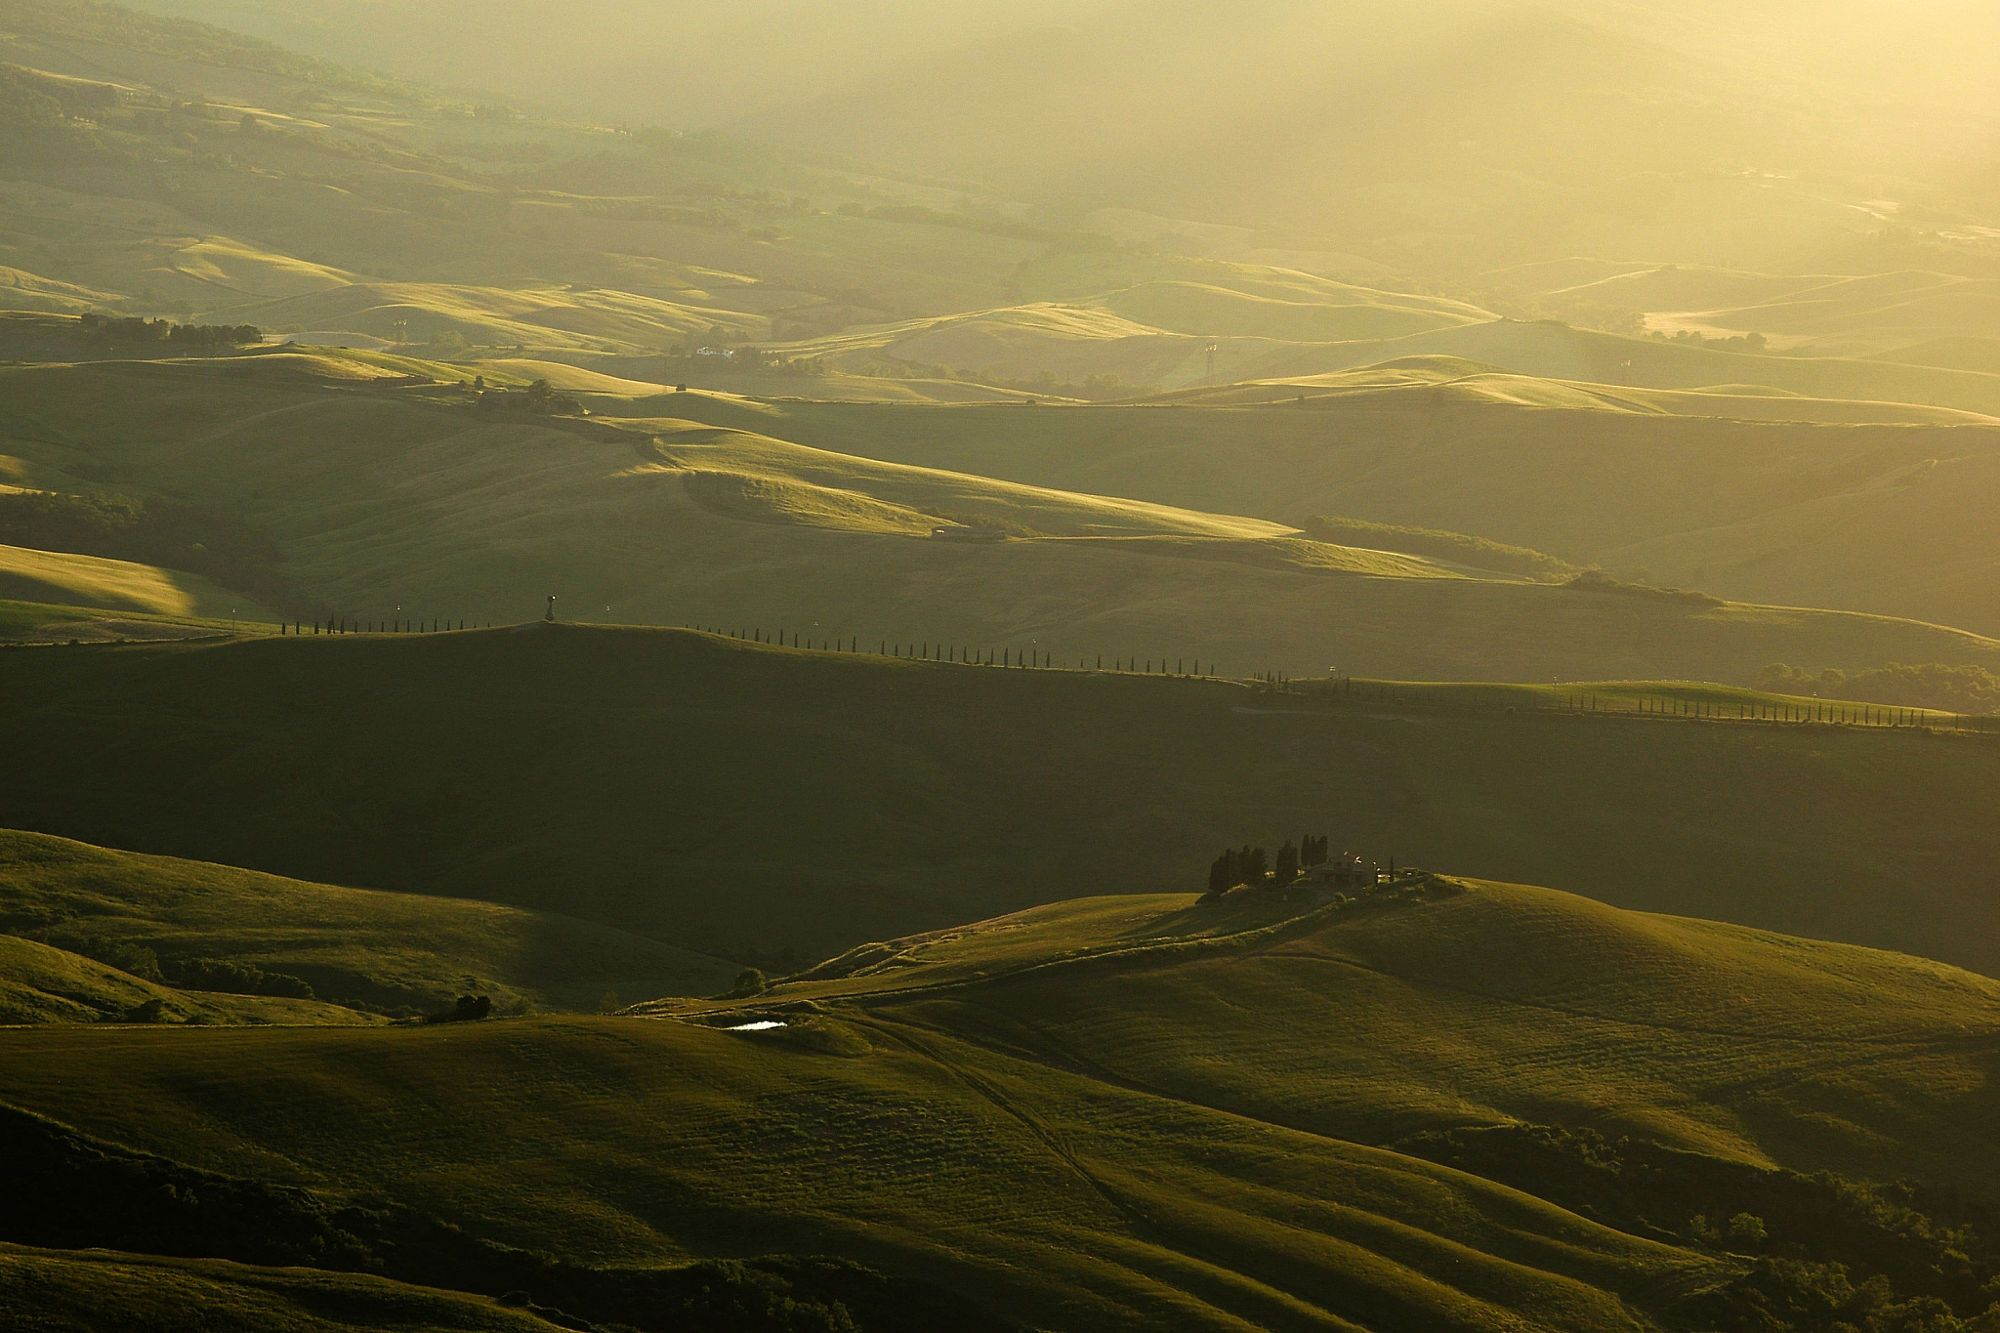 Sunset in my land by Tiziano Pieroni on 500px